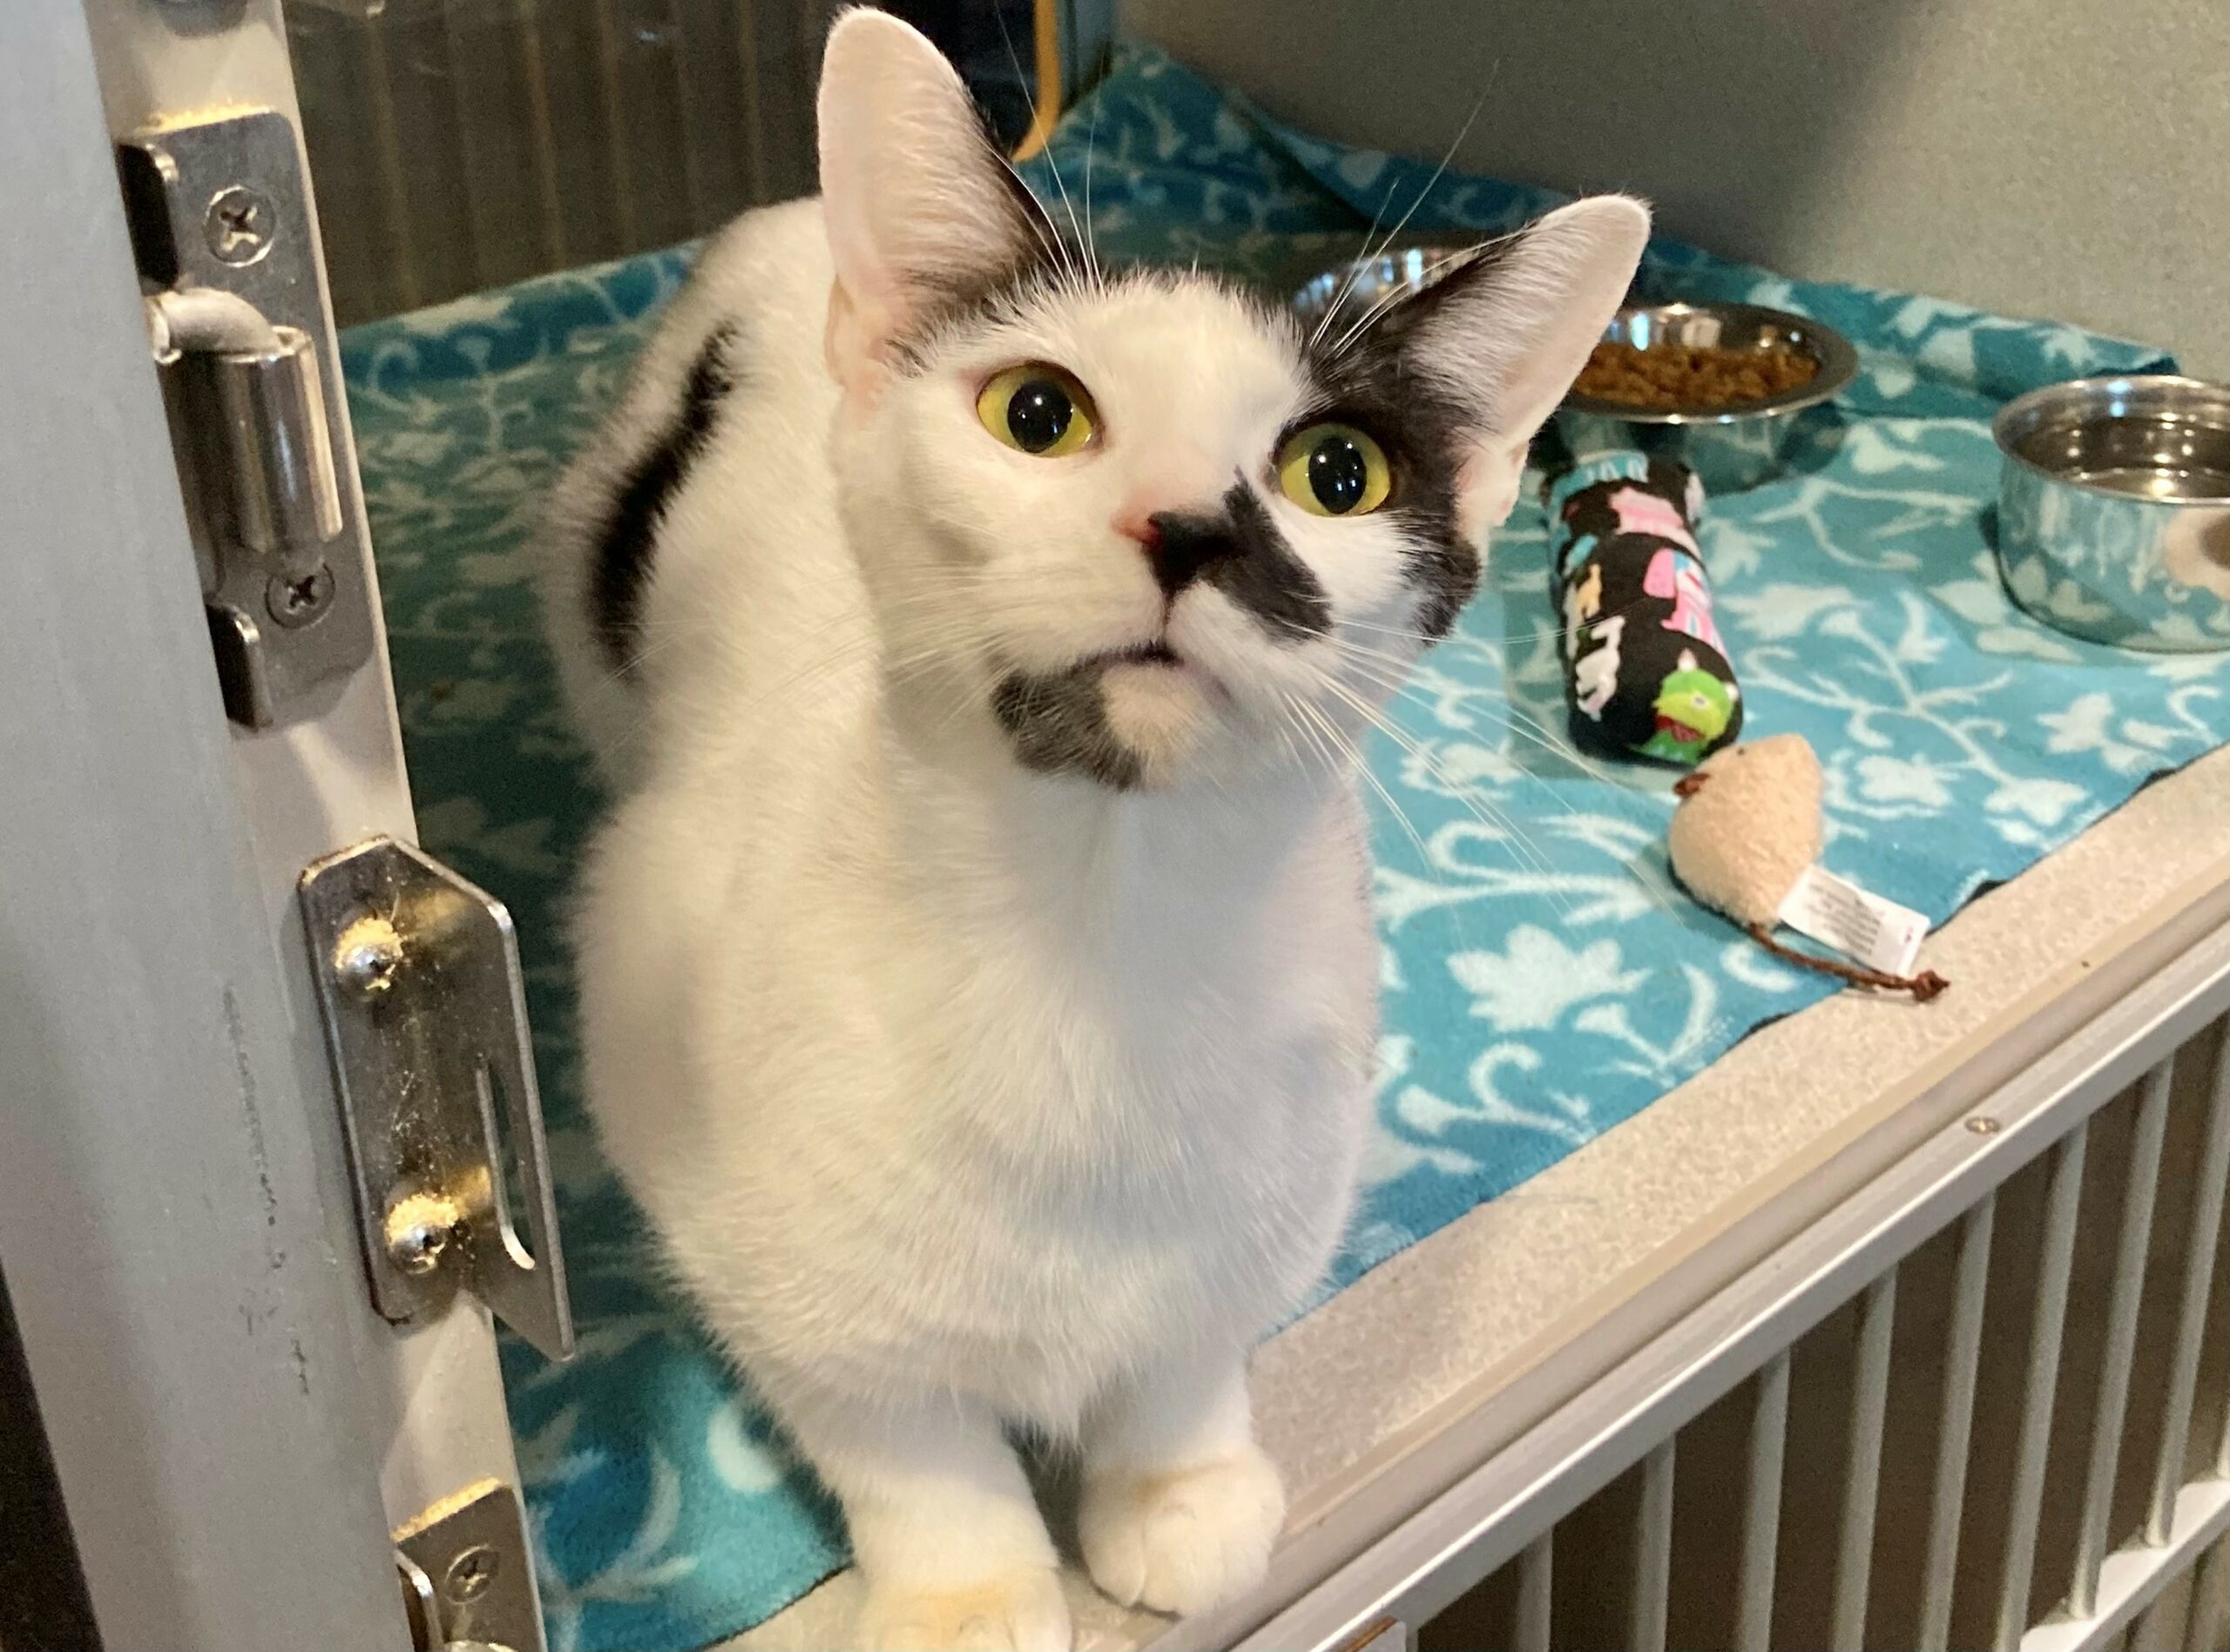 Chatta from Orange County Animal Services